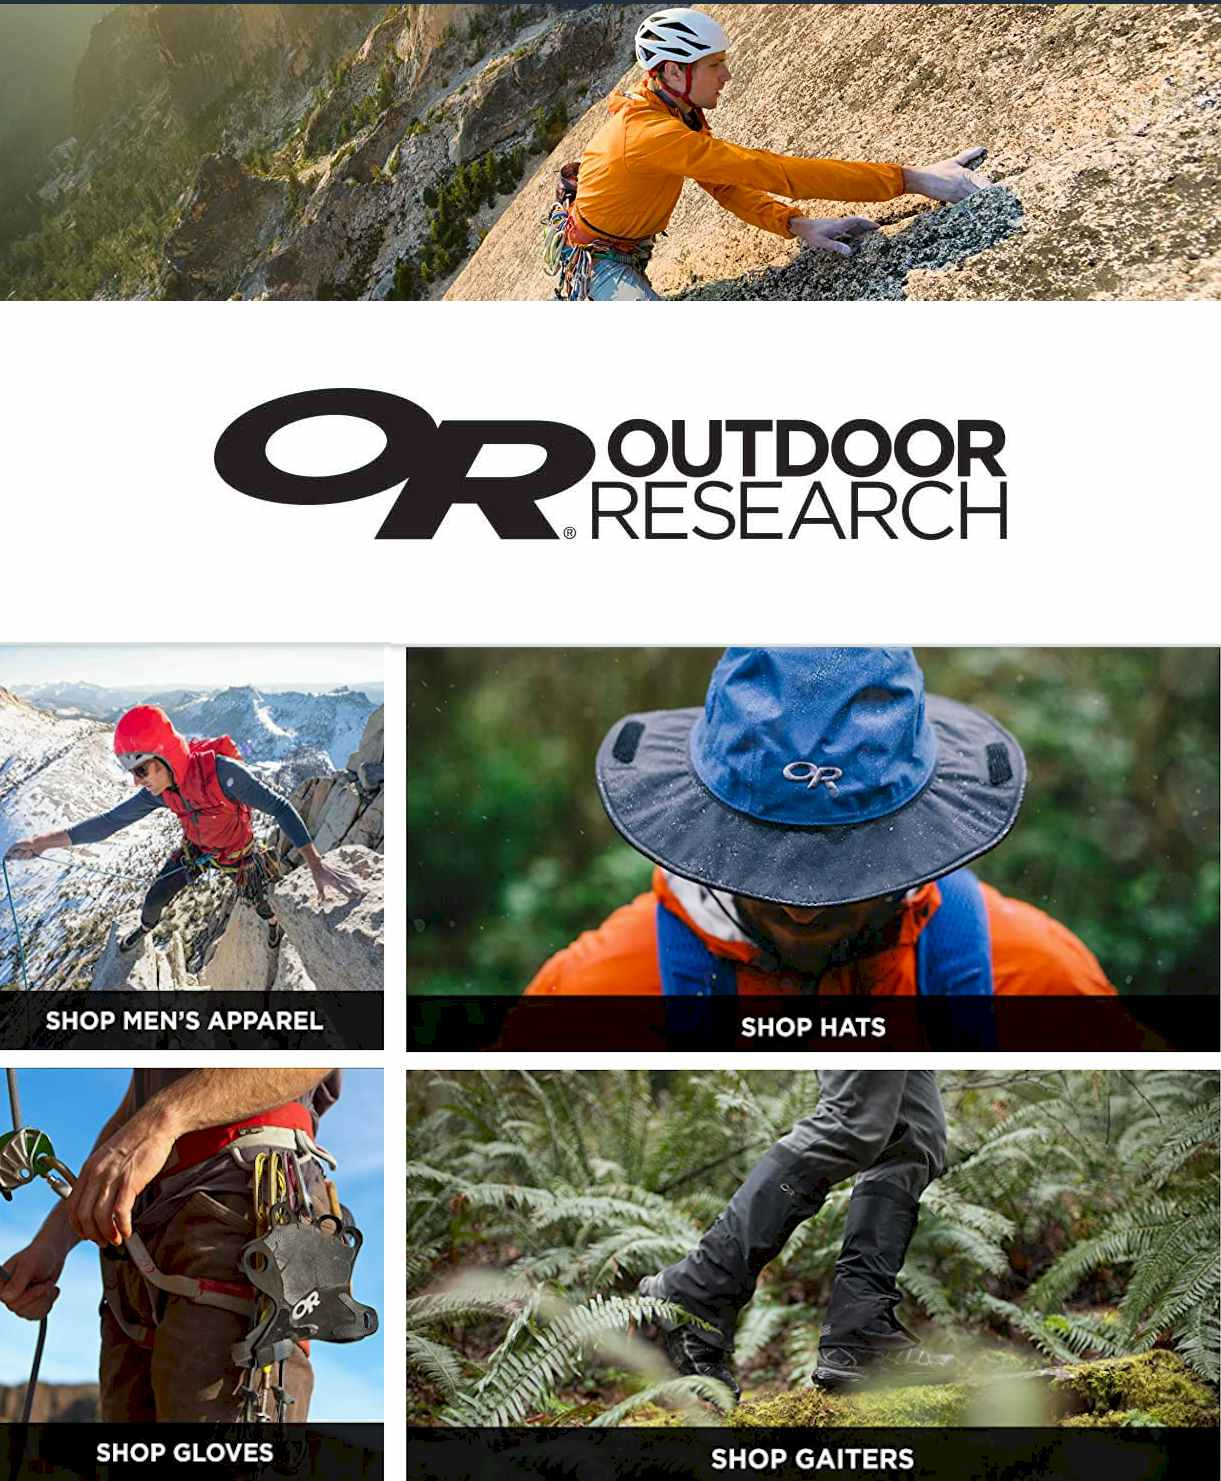 Outdoor Research Store on #Amazon - #hiking #outdoor #Camping #gifts #xmas